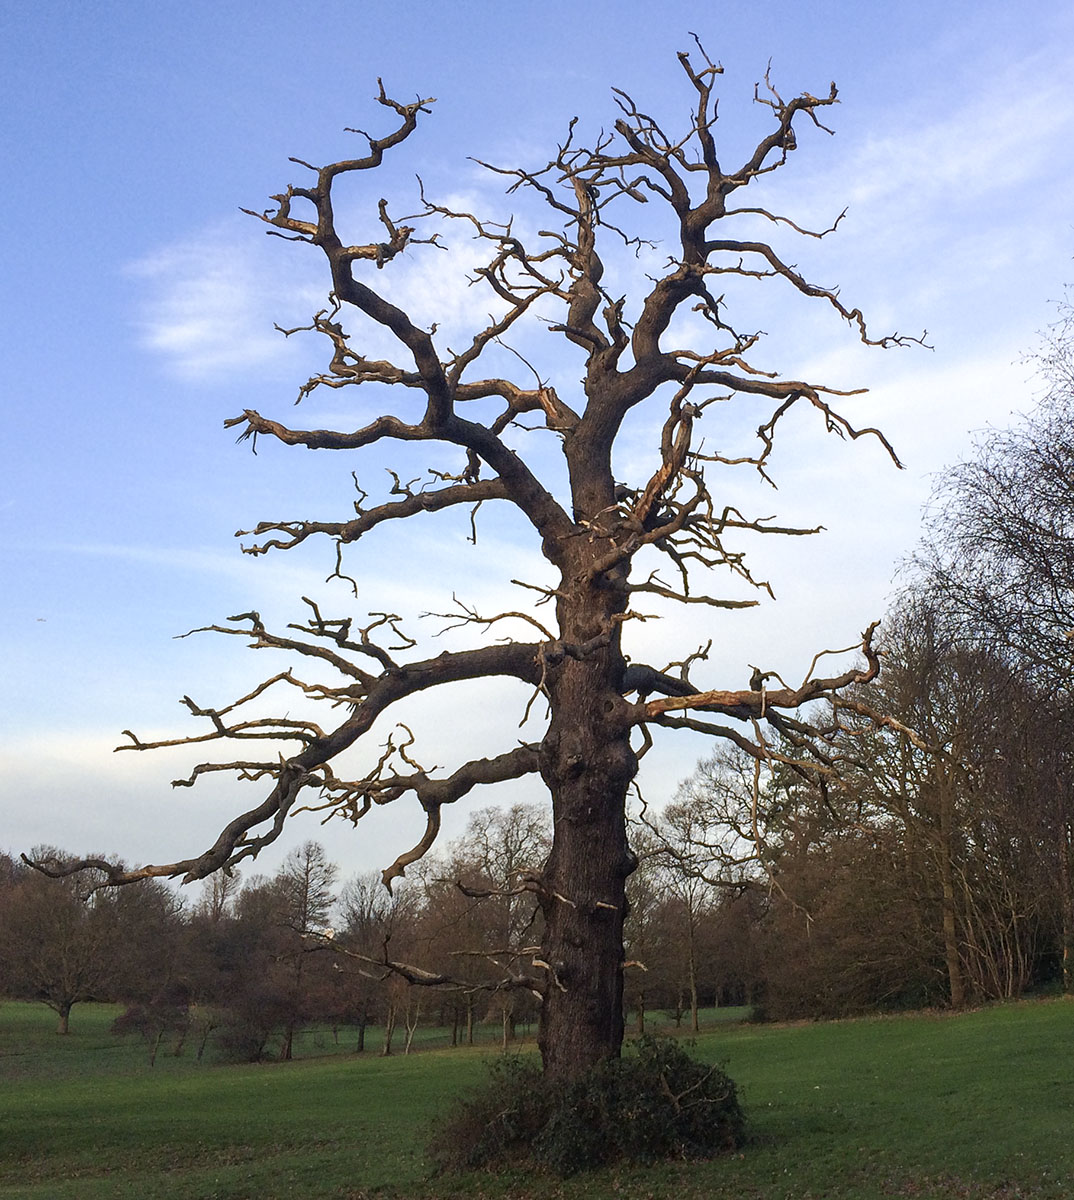 Dead oak in Beckenham Place Park, 20 December 2013.